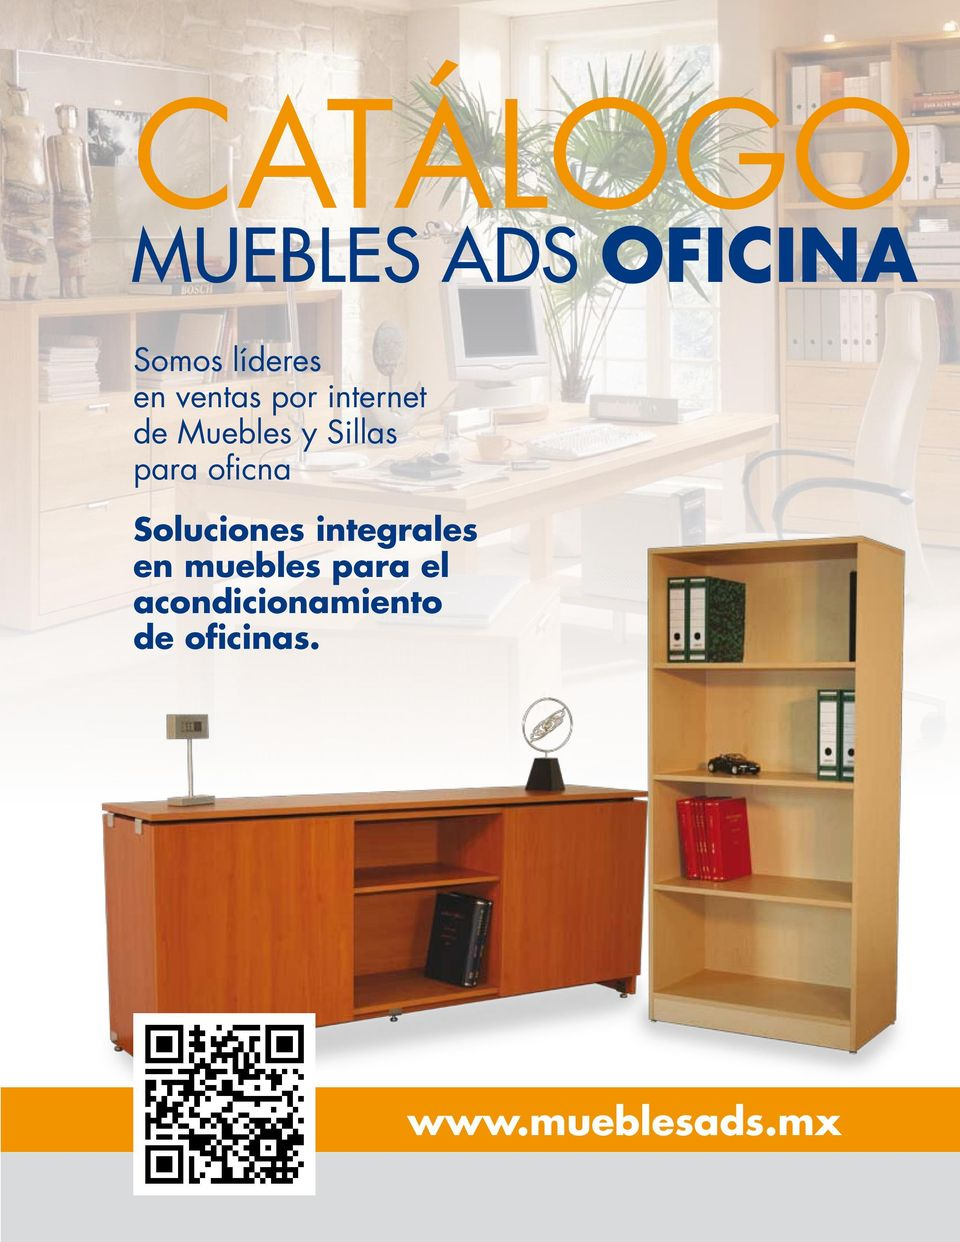 Cat logo muebles ads oficina pdf for Catalogo muebles oficina